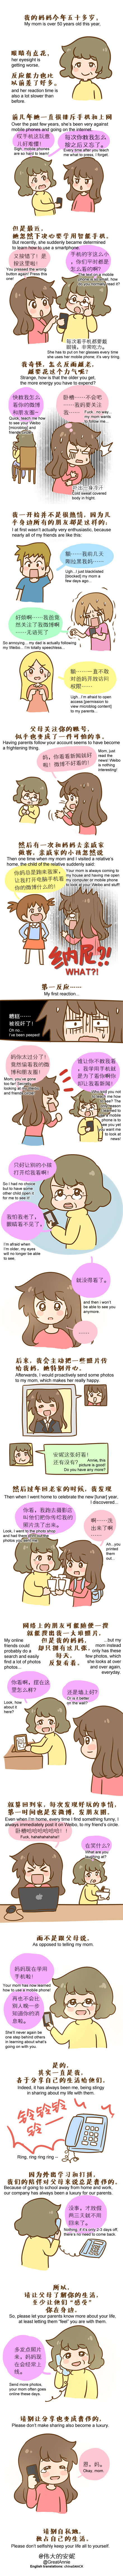 mom-learns-mobile-phone-chinese-comic-strip-english-translation